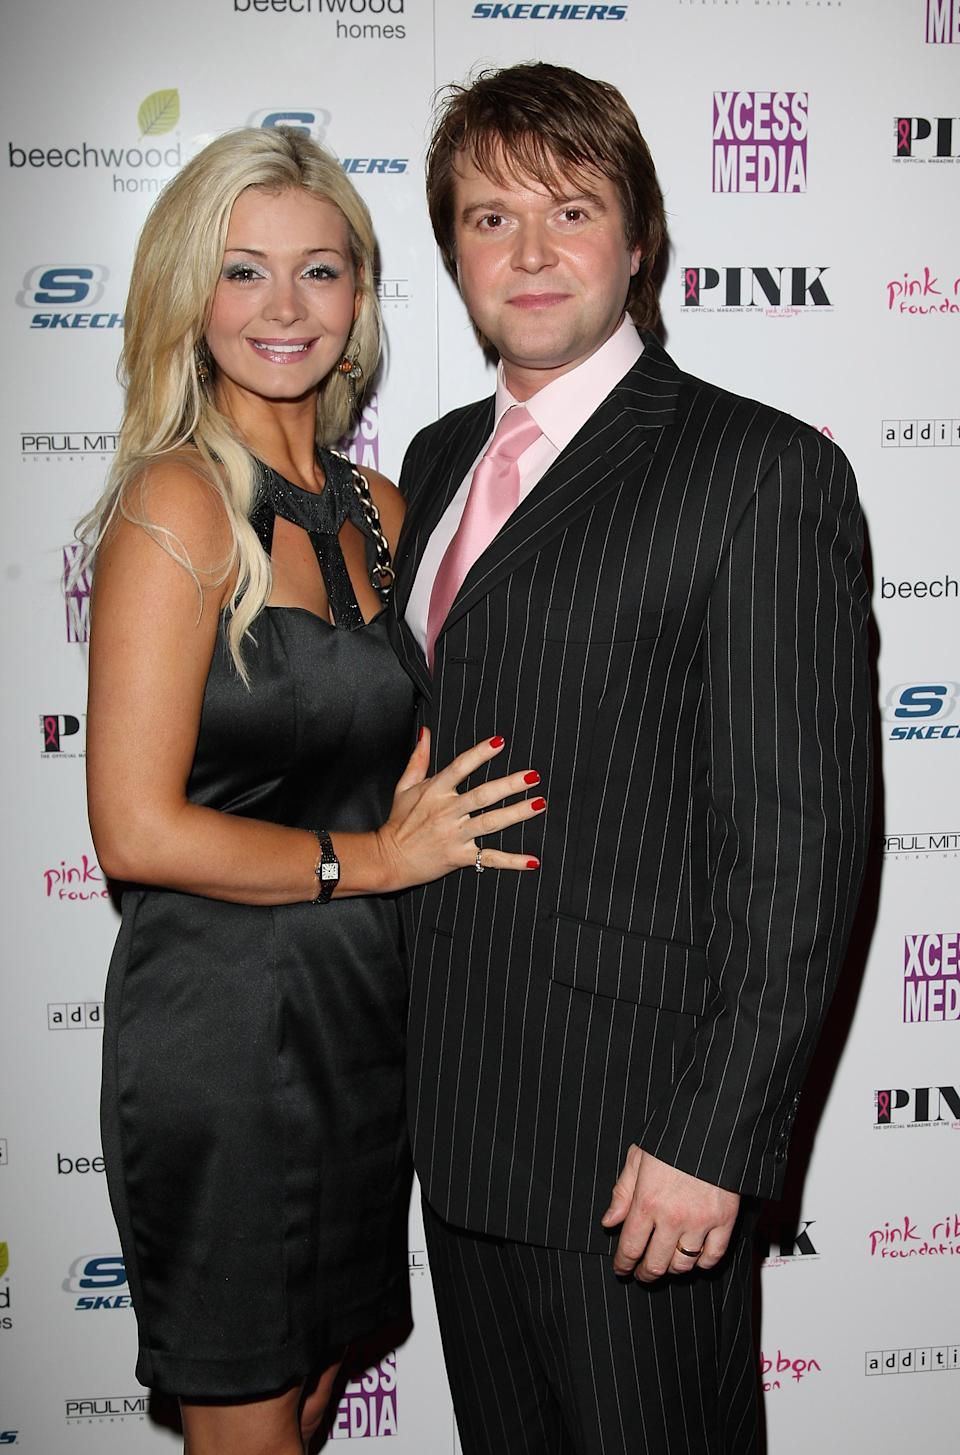 Darren Day with his then-wife Stephanie attend the In The Pink Magazine Launch Party held at the CC Club on October 3, 2007 in London.  (Photo byJon Furniss/WireImage).  (Photo by Jon Furniss/WireImage)